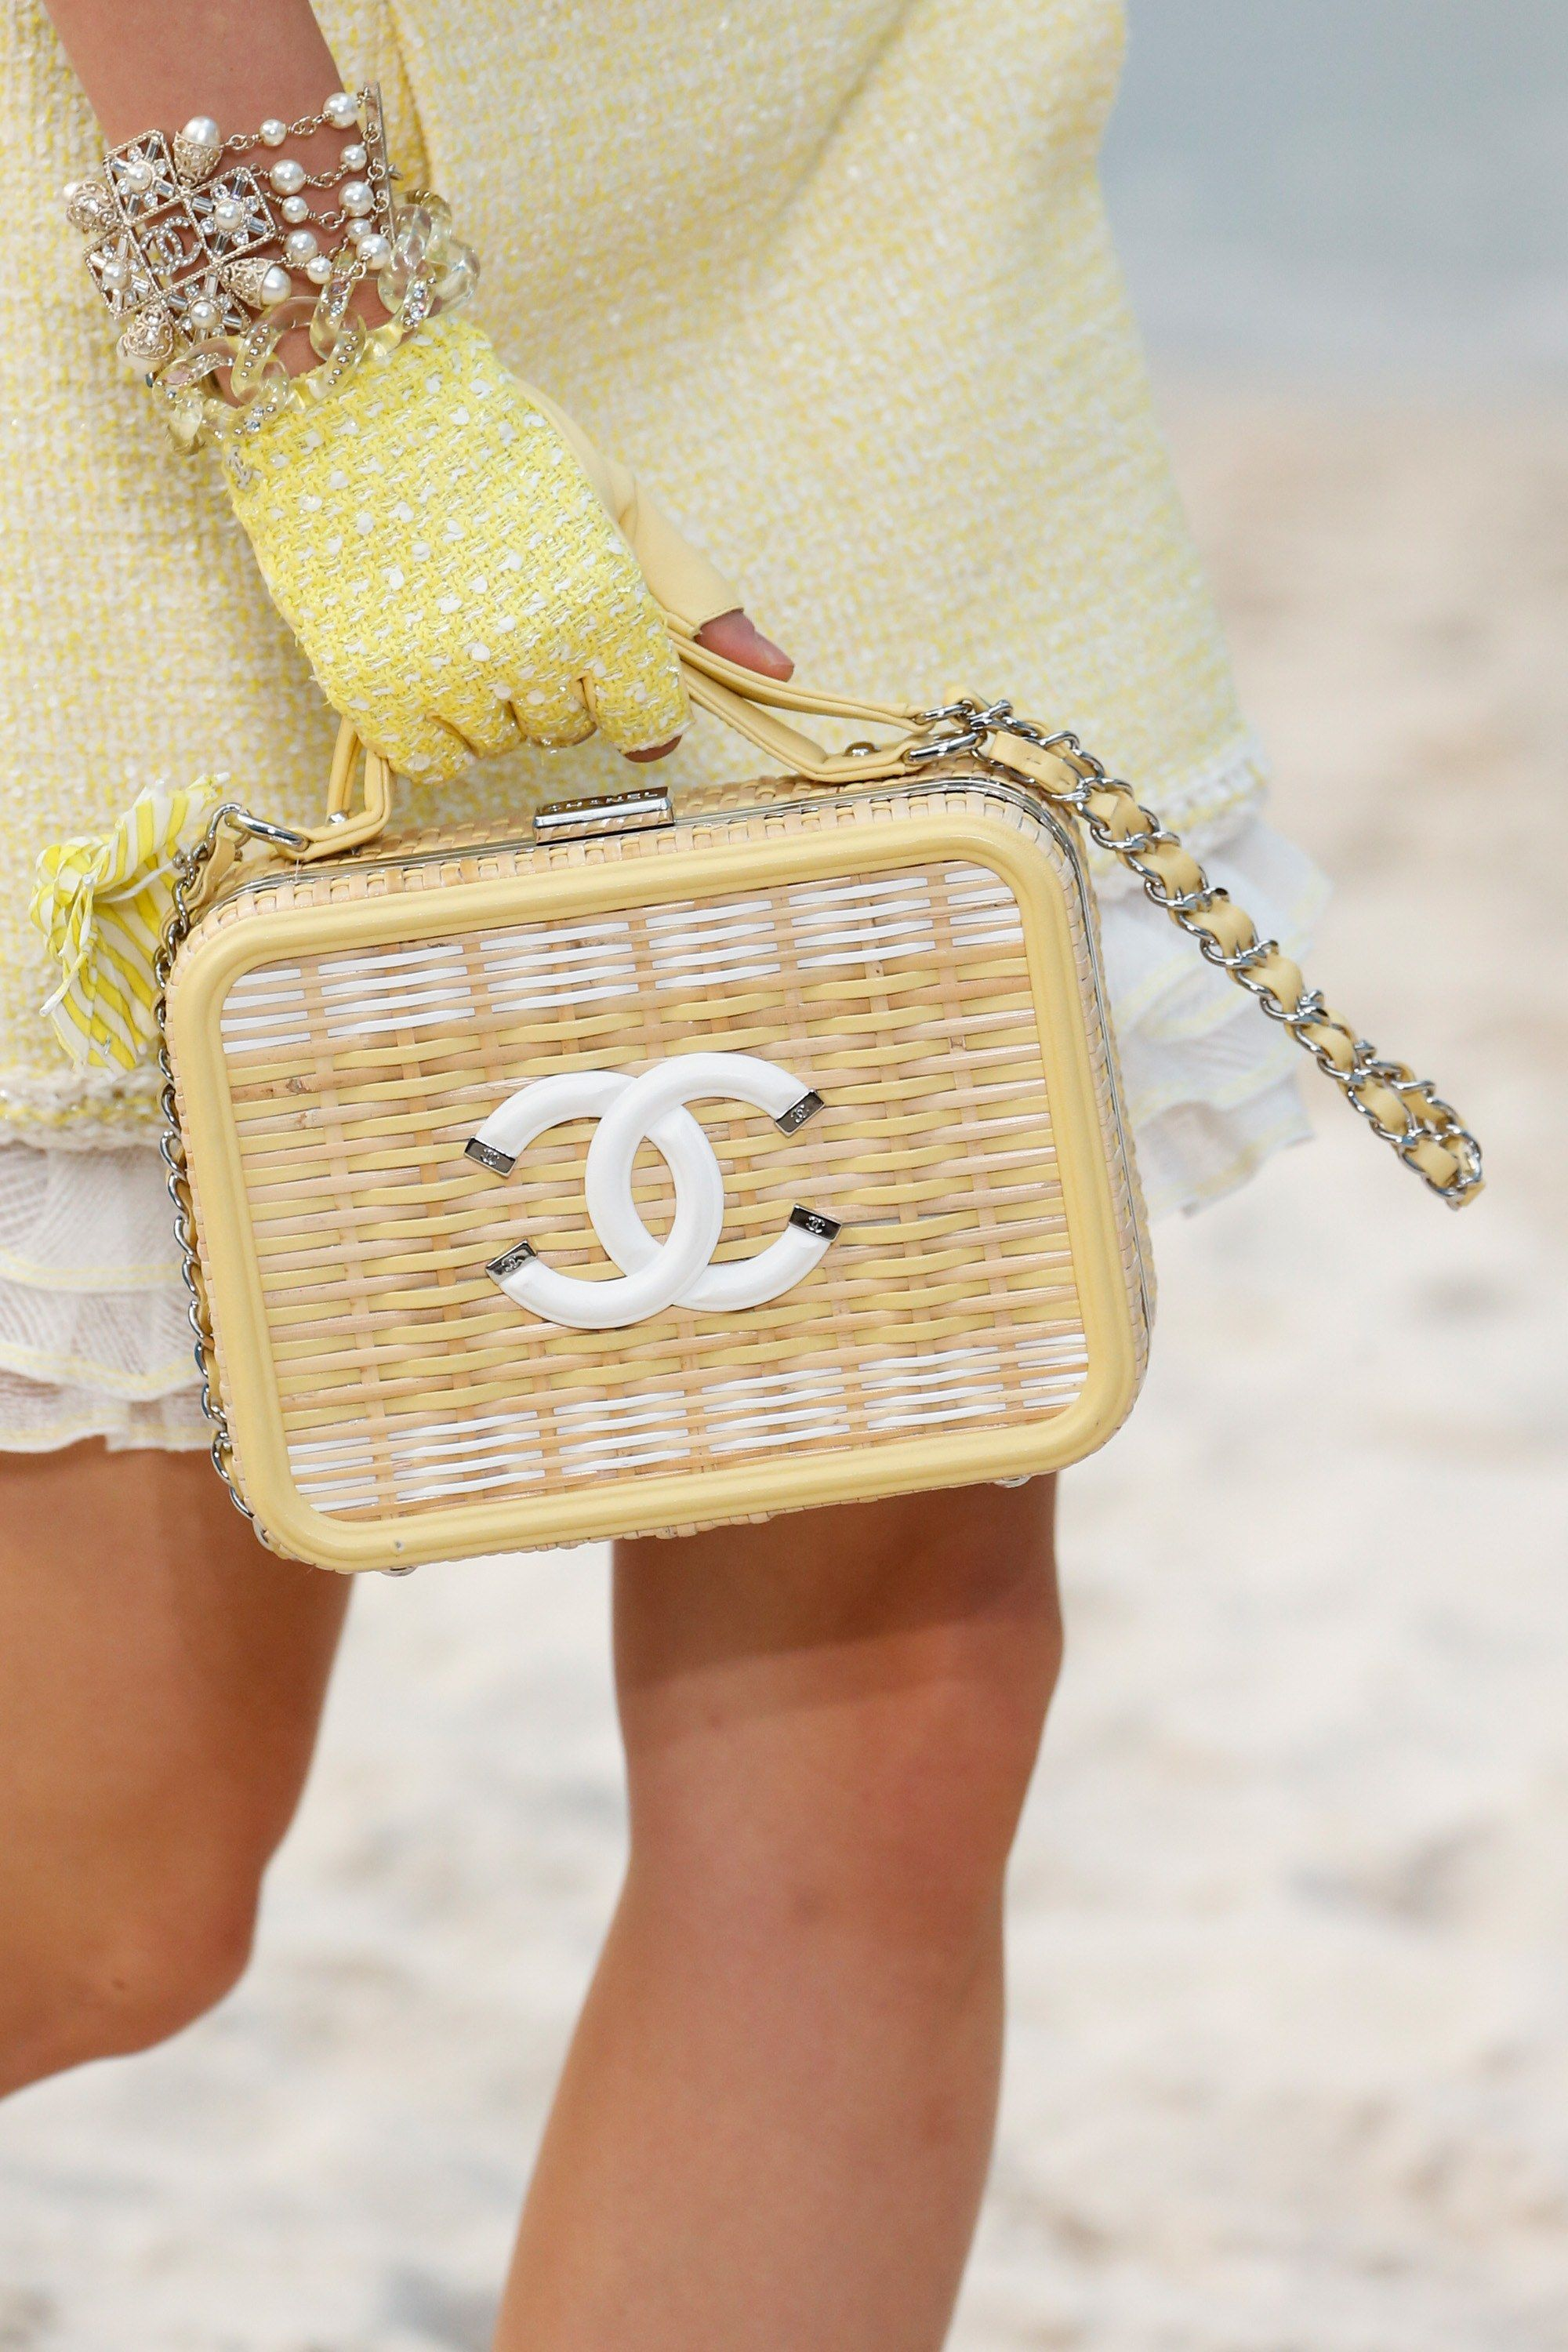 19ab9c65ff59 Chanel Spring Summer 2019 Runway Bag Collection - Chanel By The Sea ...